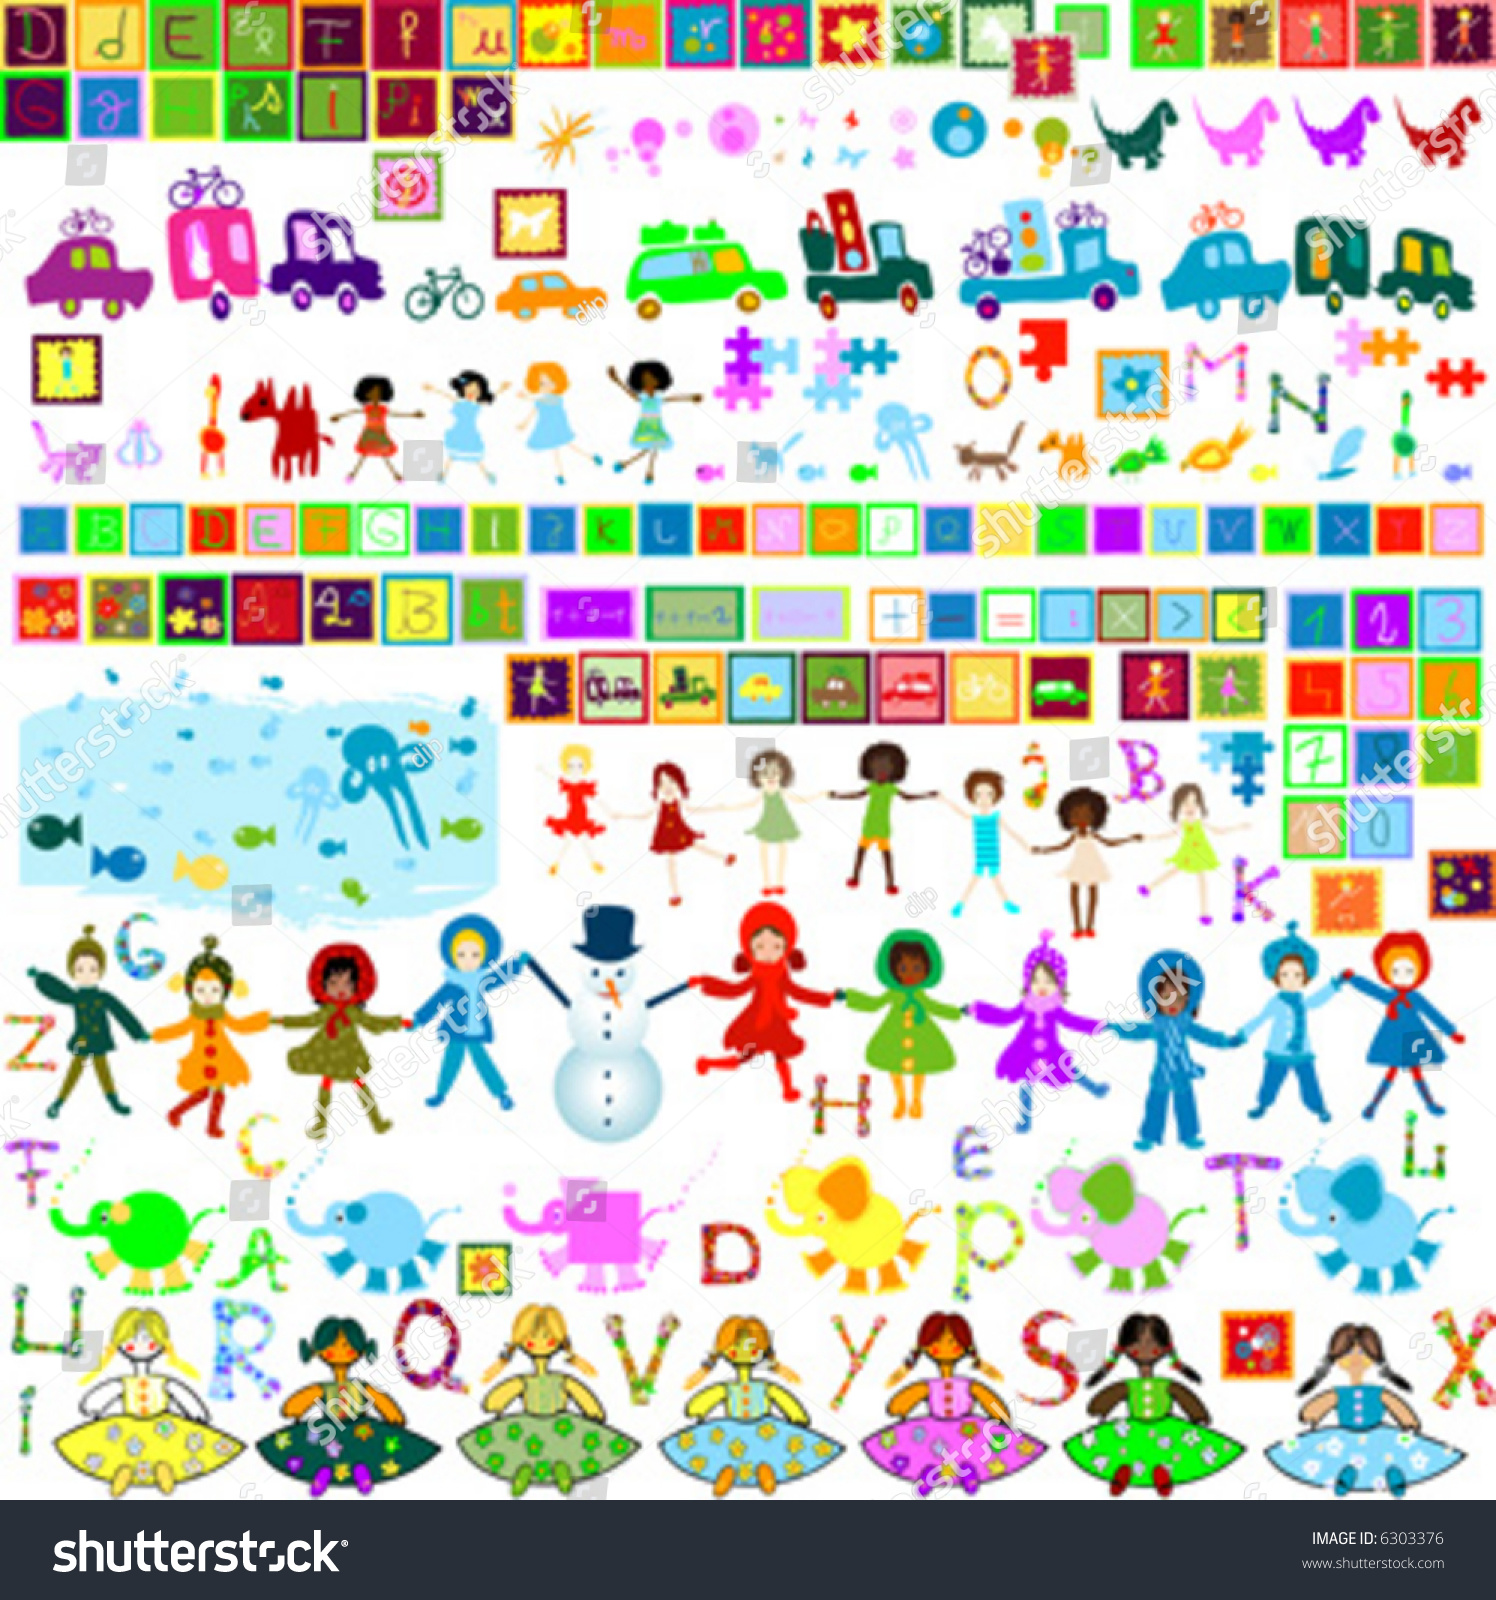 Preschool World Collection Of Design Elements For Kids